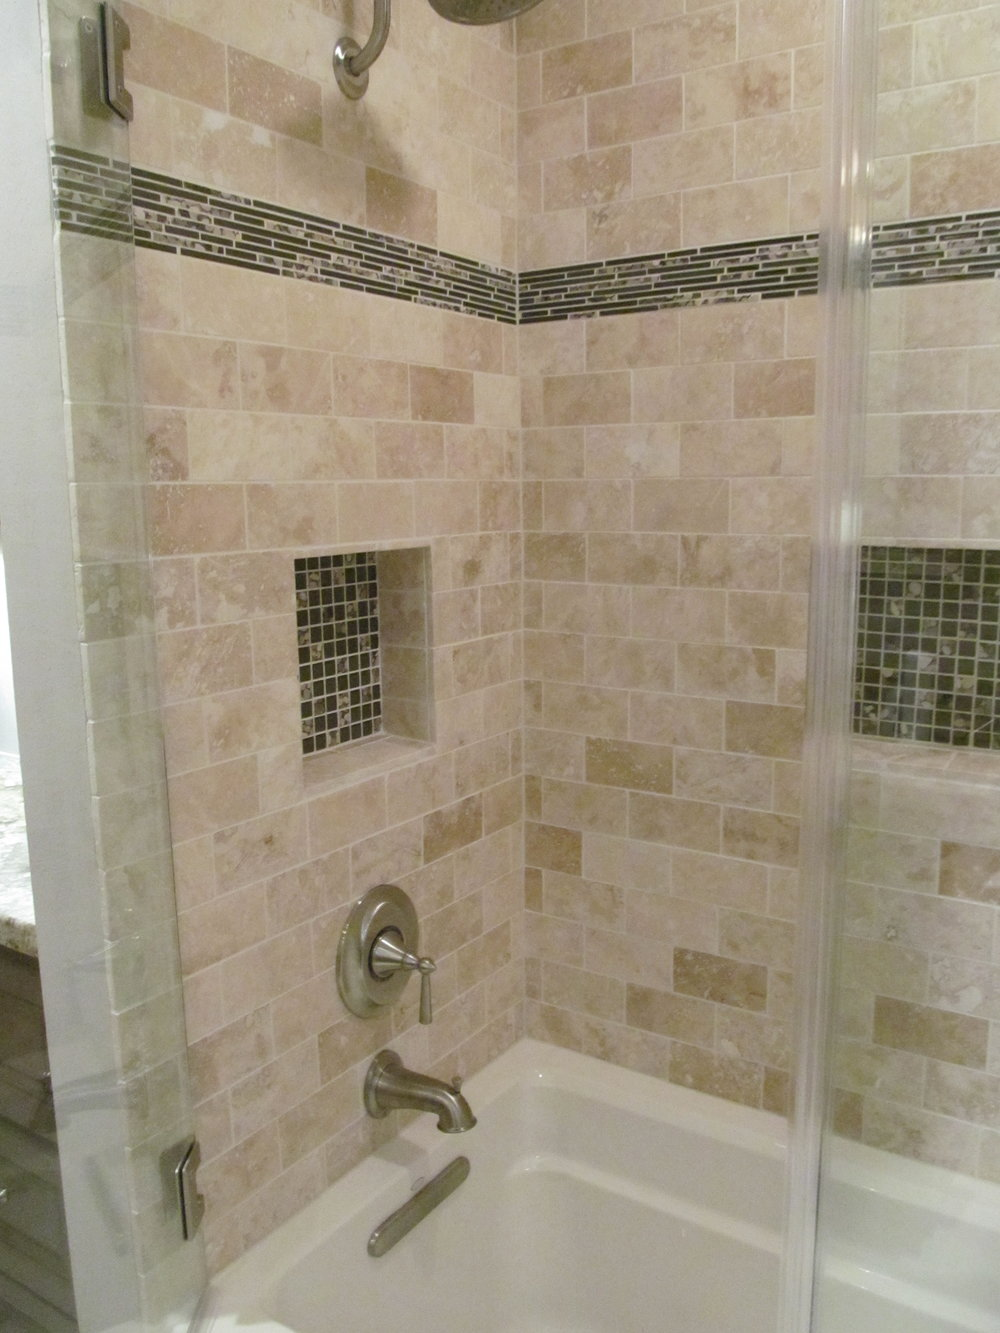 Tub shower combo accent tile was the inspiration for the look in the bathroom.JPG